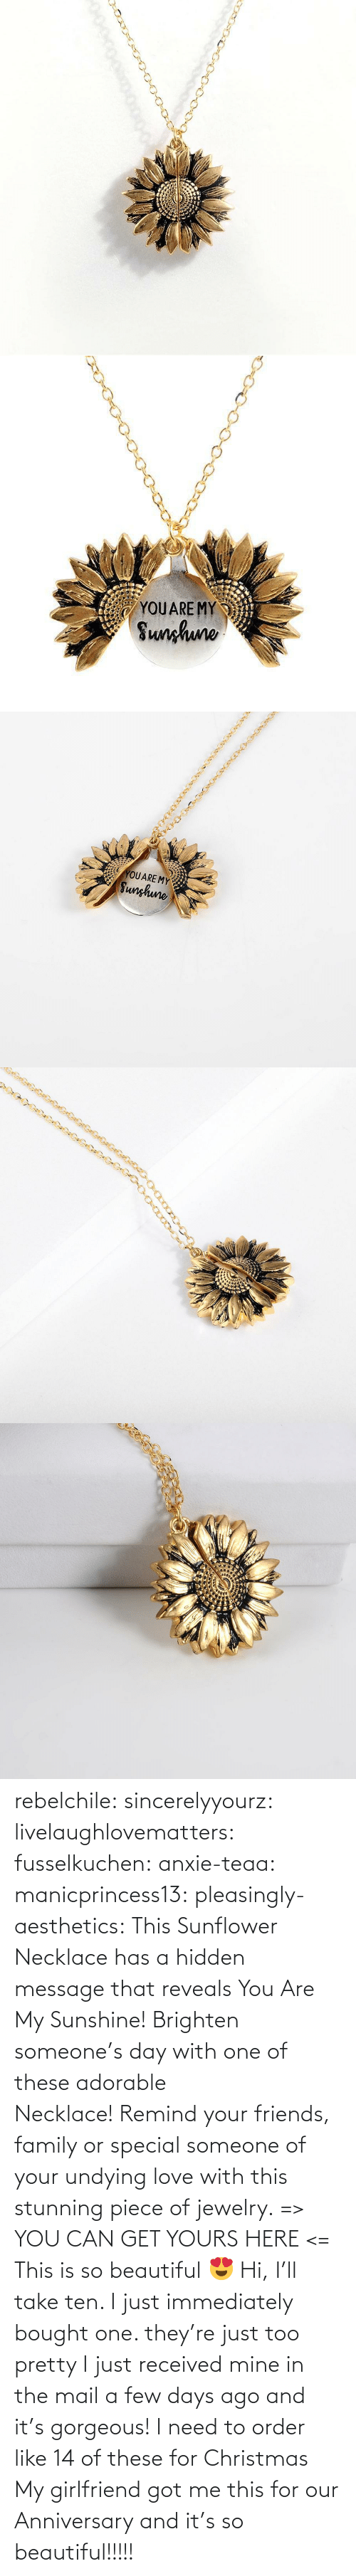 a-few-days: YOUARE MY  Sunhuno   YOUARE MY  Sunghune rebelchile:  sincerelyyourz:  livelaughlovematters:  fusselkuchen:  anxie-teaa:   manicprincess13:   pleasingly-aesthetics:  This Sunflower Necklace has a hidden message that reveals You Are My Sunshine! Brighten someone's day with one of these adorable Necklace! Remind your friends, family or special someone of your undying love with this stunning piece of jewelry. => YOU CAN GET YOURS HERE <=   This is so beautiful 😍    Hi, I'll take ten.    I just immediately bought one. they're just too pretty   I just received mine in the mail a few days ago and it's gorgeous!   I need to order like 14 of these for Christmas    My girlfriend got me this for our Anniversary and it's so beautiful!!!!!